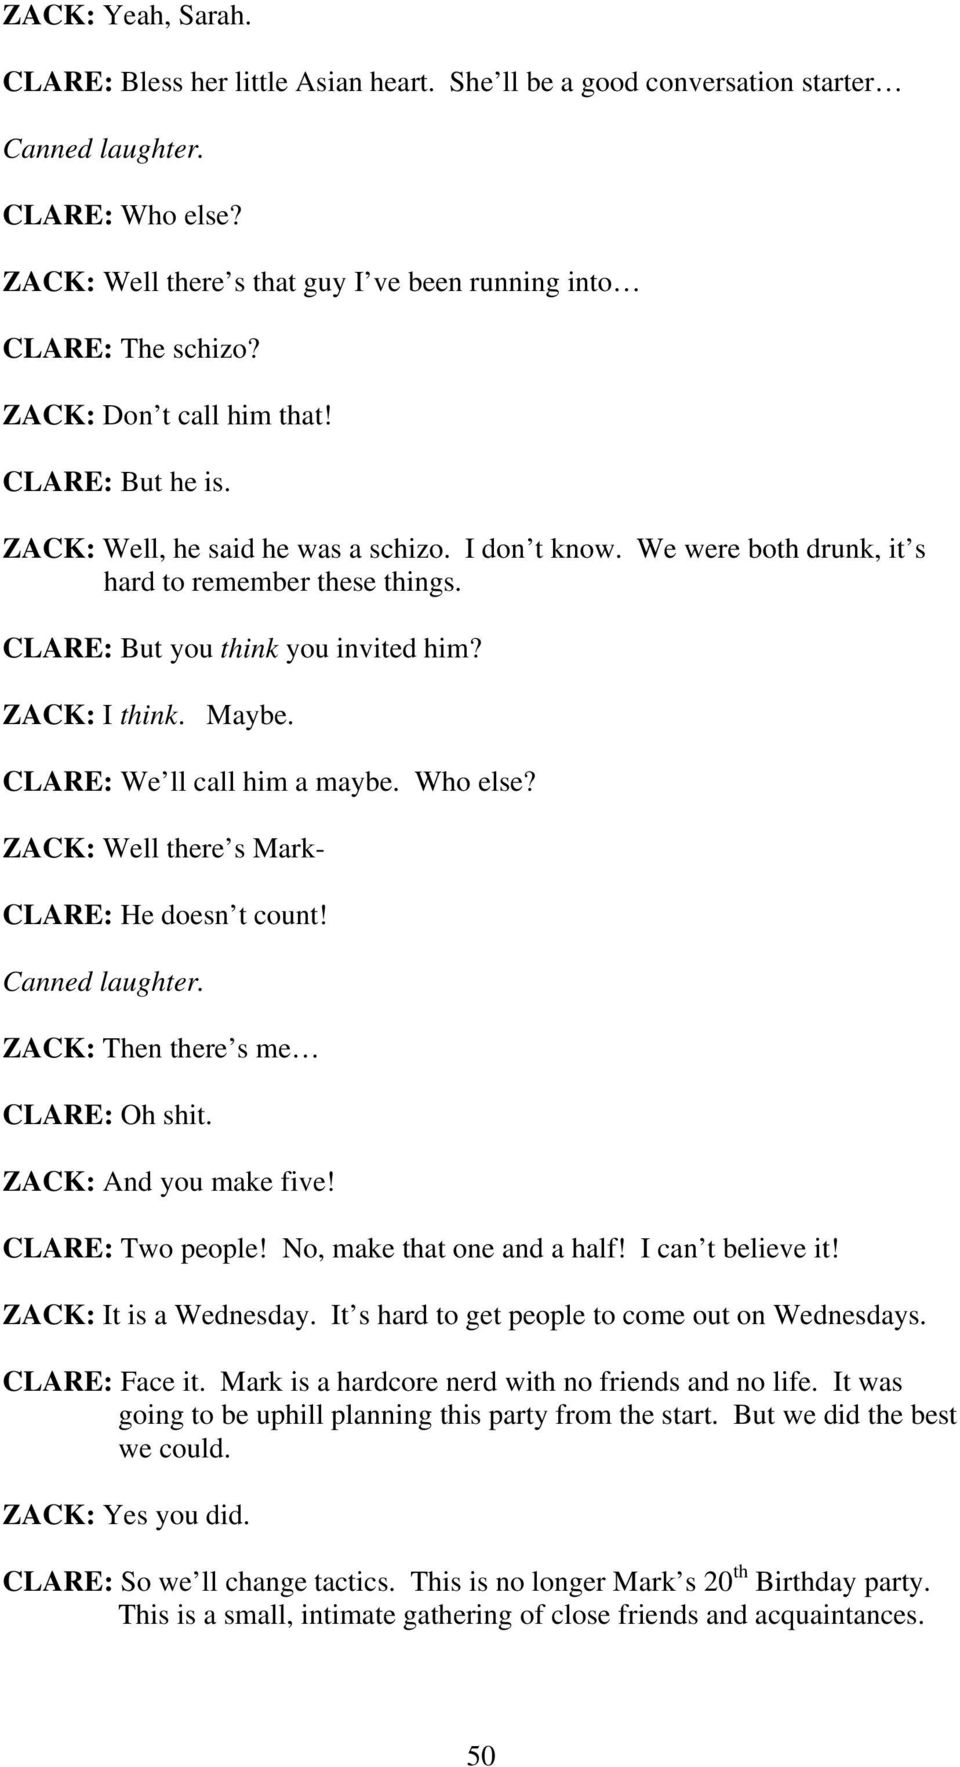 ZACK: I think. Maybe. CLARE: We ll call him a maybe. Who else? ZACK: Well there s Mark- CLARE: He doesn t count! Canned laughter. ZACK: Then there s me CLARE: Oh shit. ZACK: And you make five!